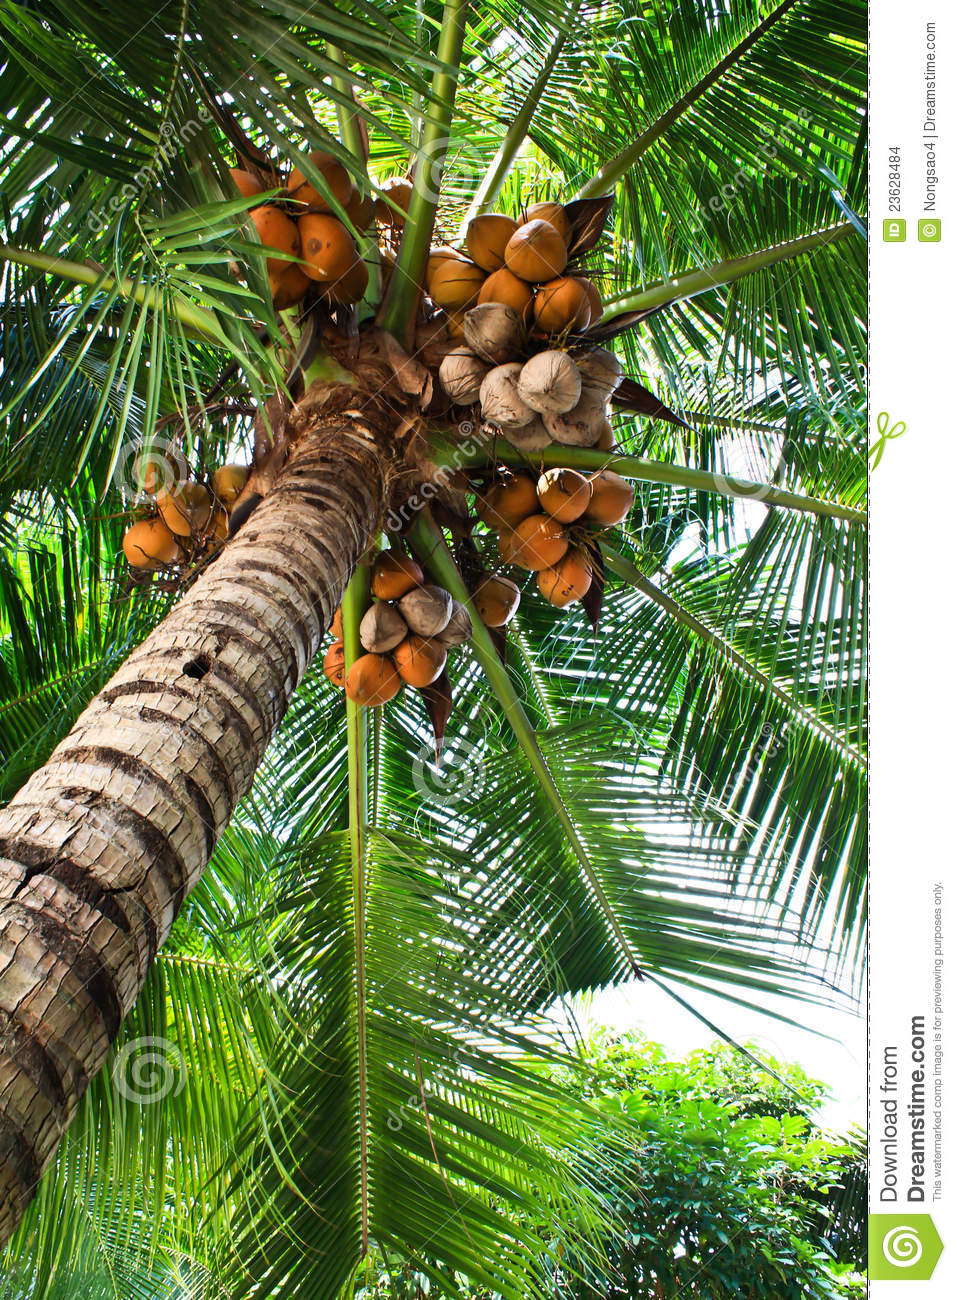 The Coconut Tree And Fruit Stock Images - Image: 23628484